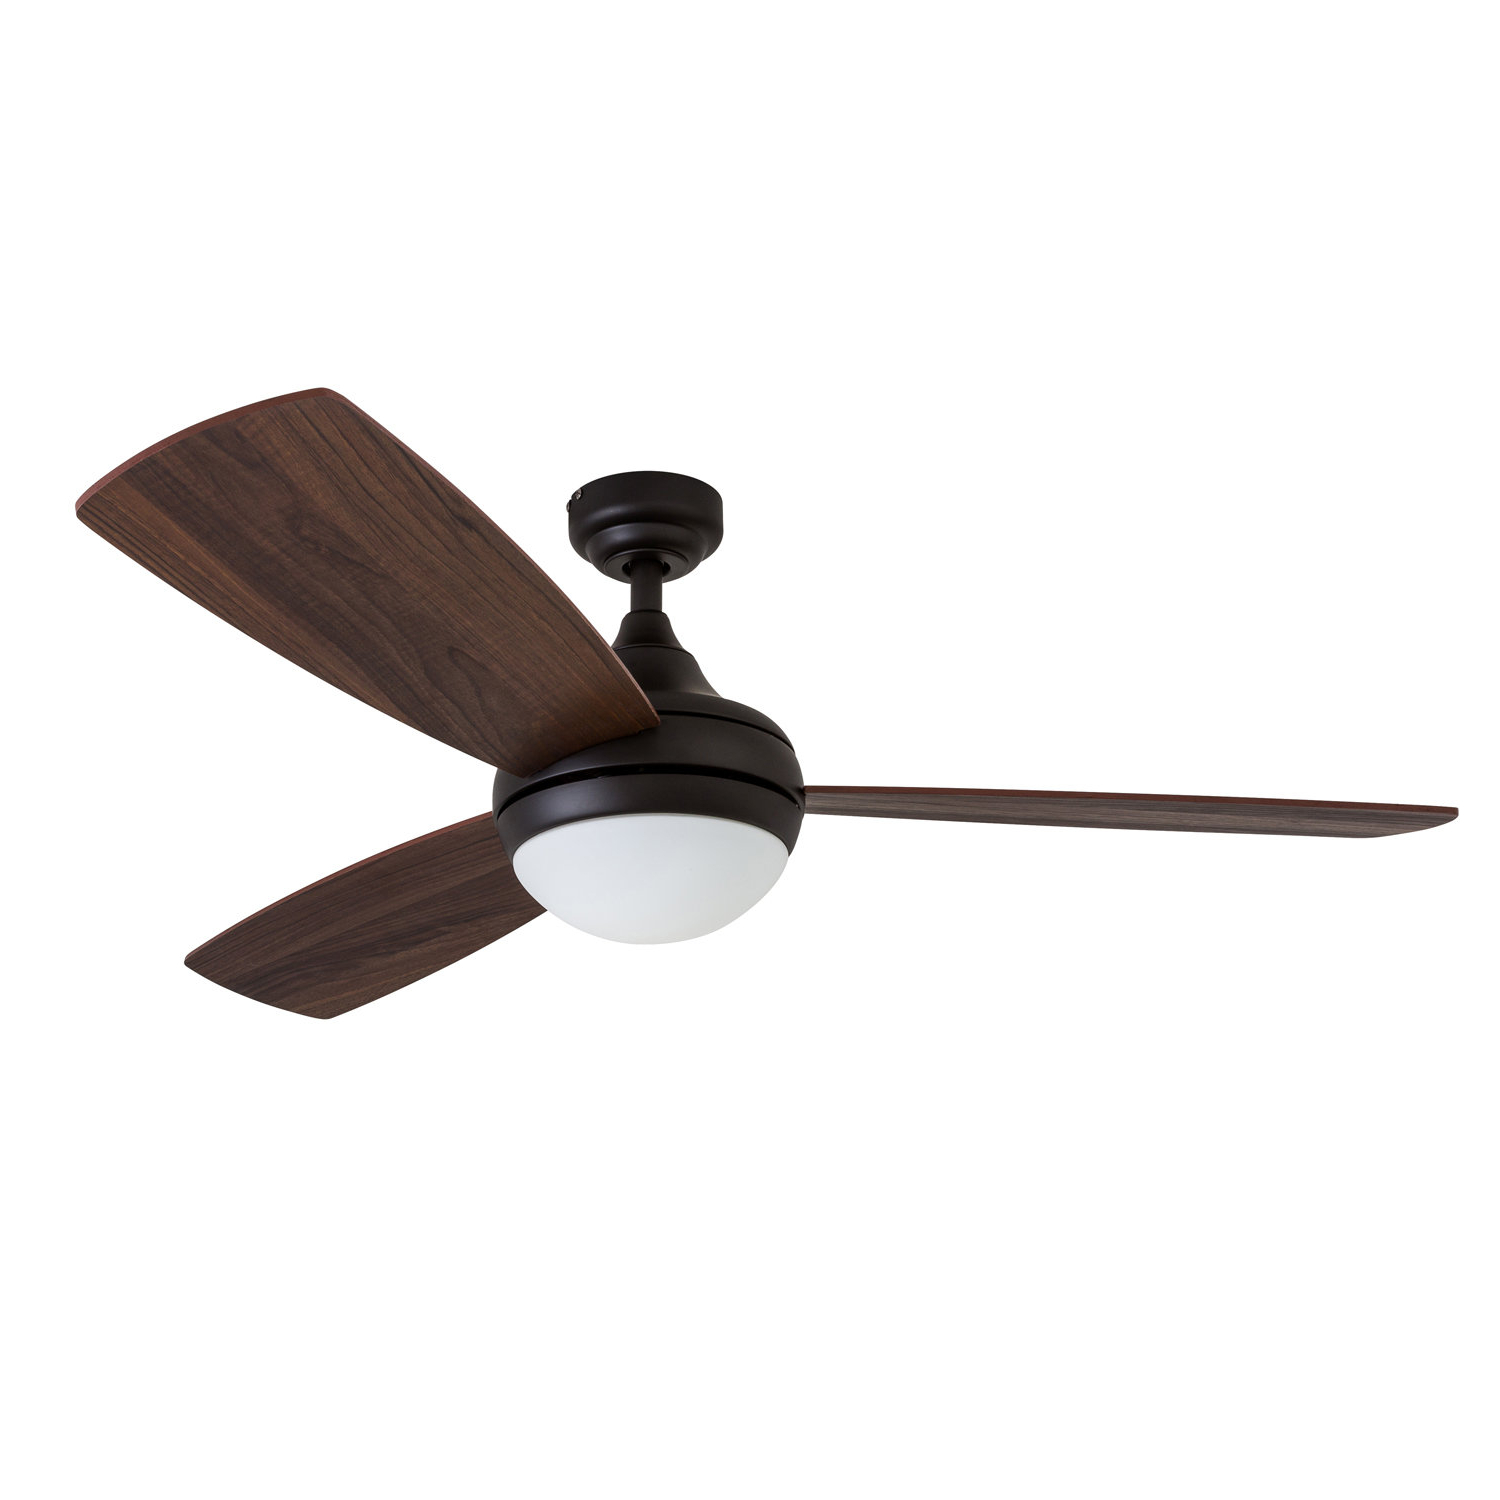 "Alyce 3 Blade Led Ceiling Fans With Remote Control Regarding Famous 52"" Alyce 3 Blade Led Ceiling Fan With Remote Control (Gallery 1 of 20)"